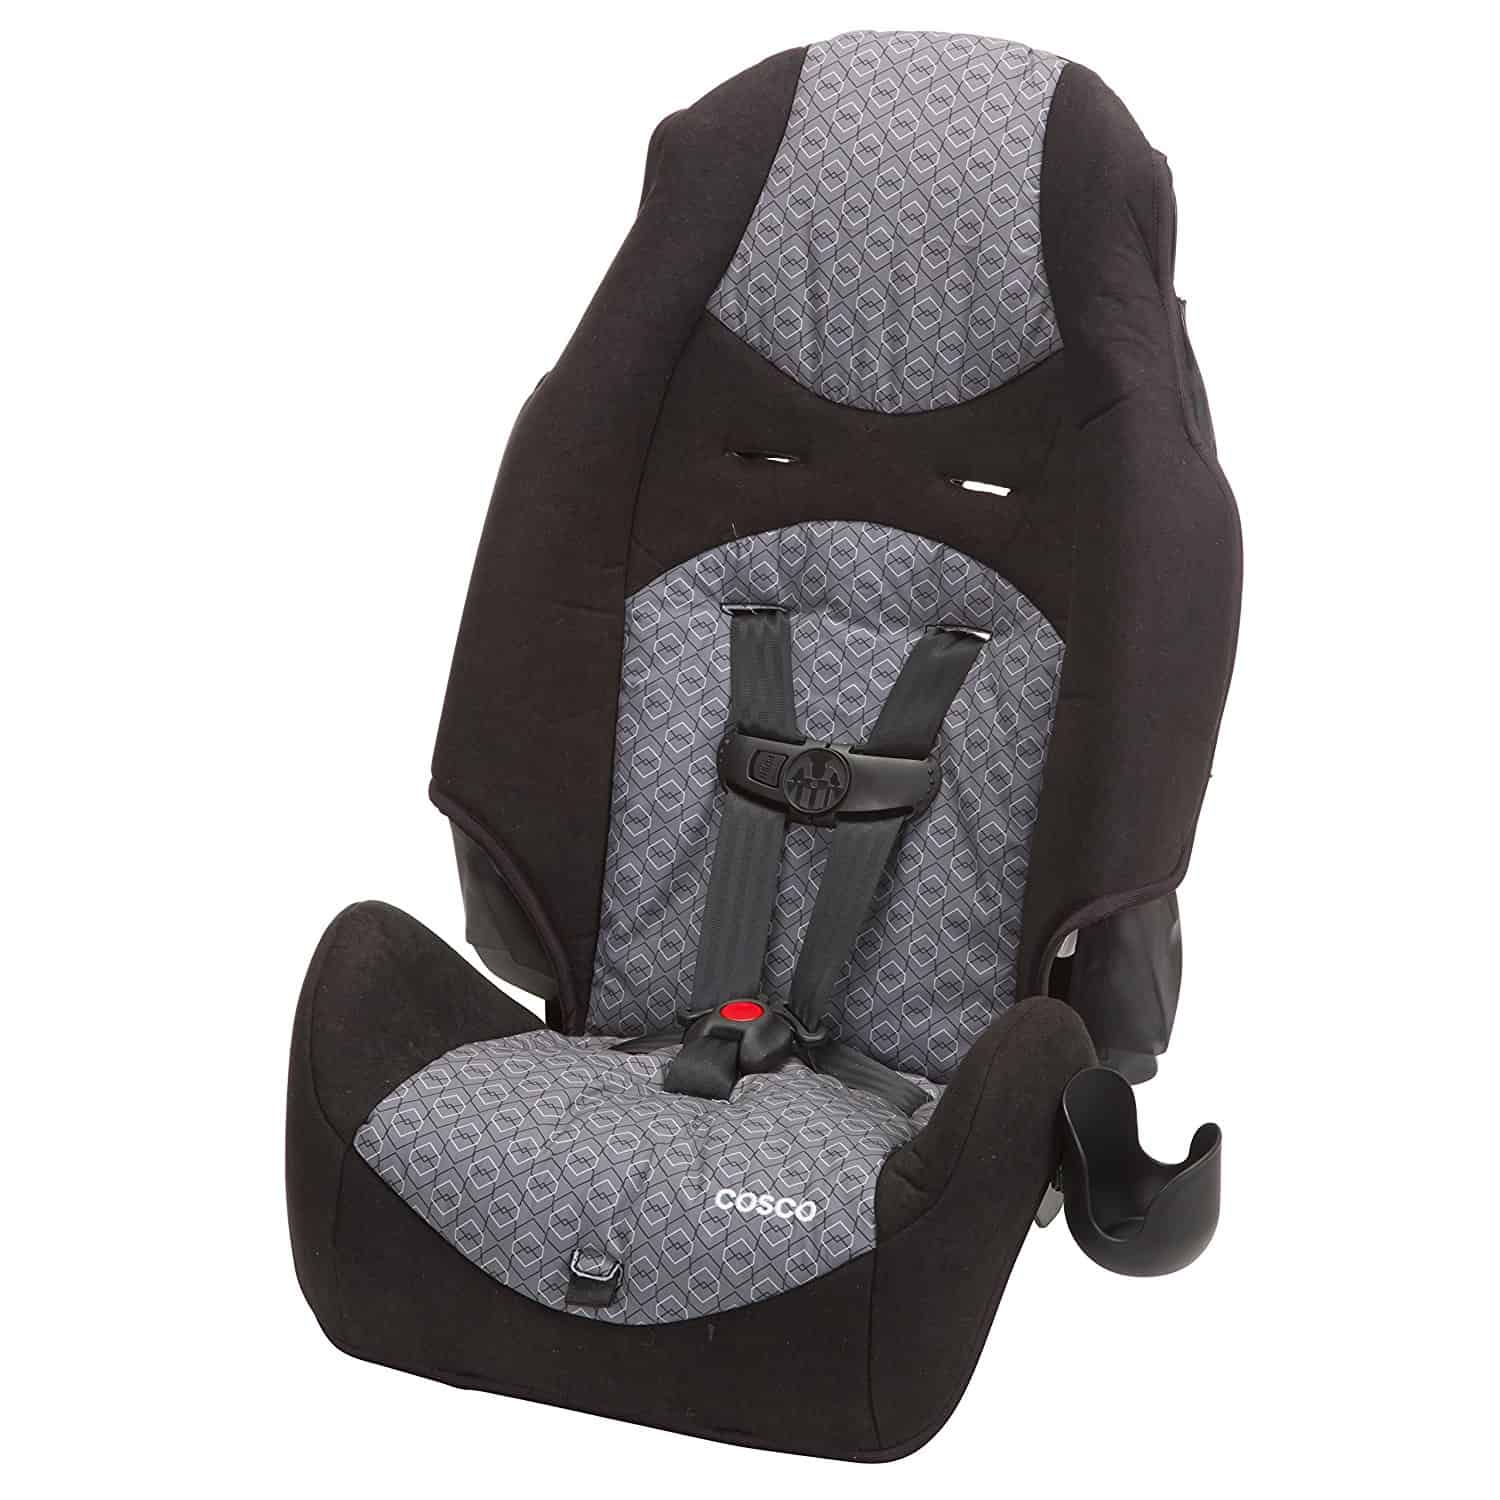 booster car seat review cosco highback baby bargains. Black Bedroom Furniture Sets. Home Design Ideas